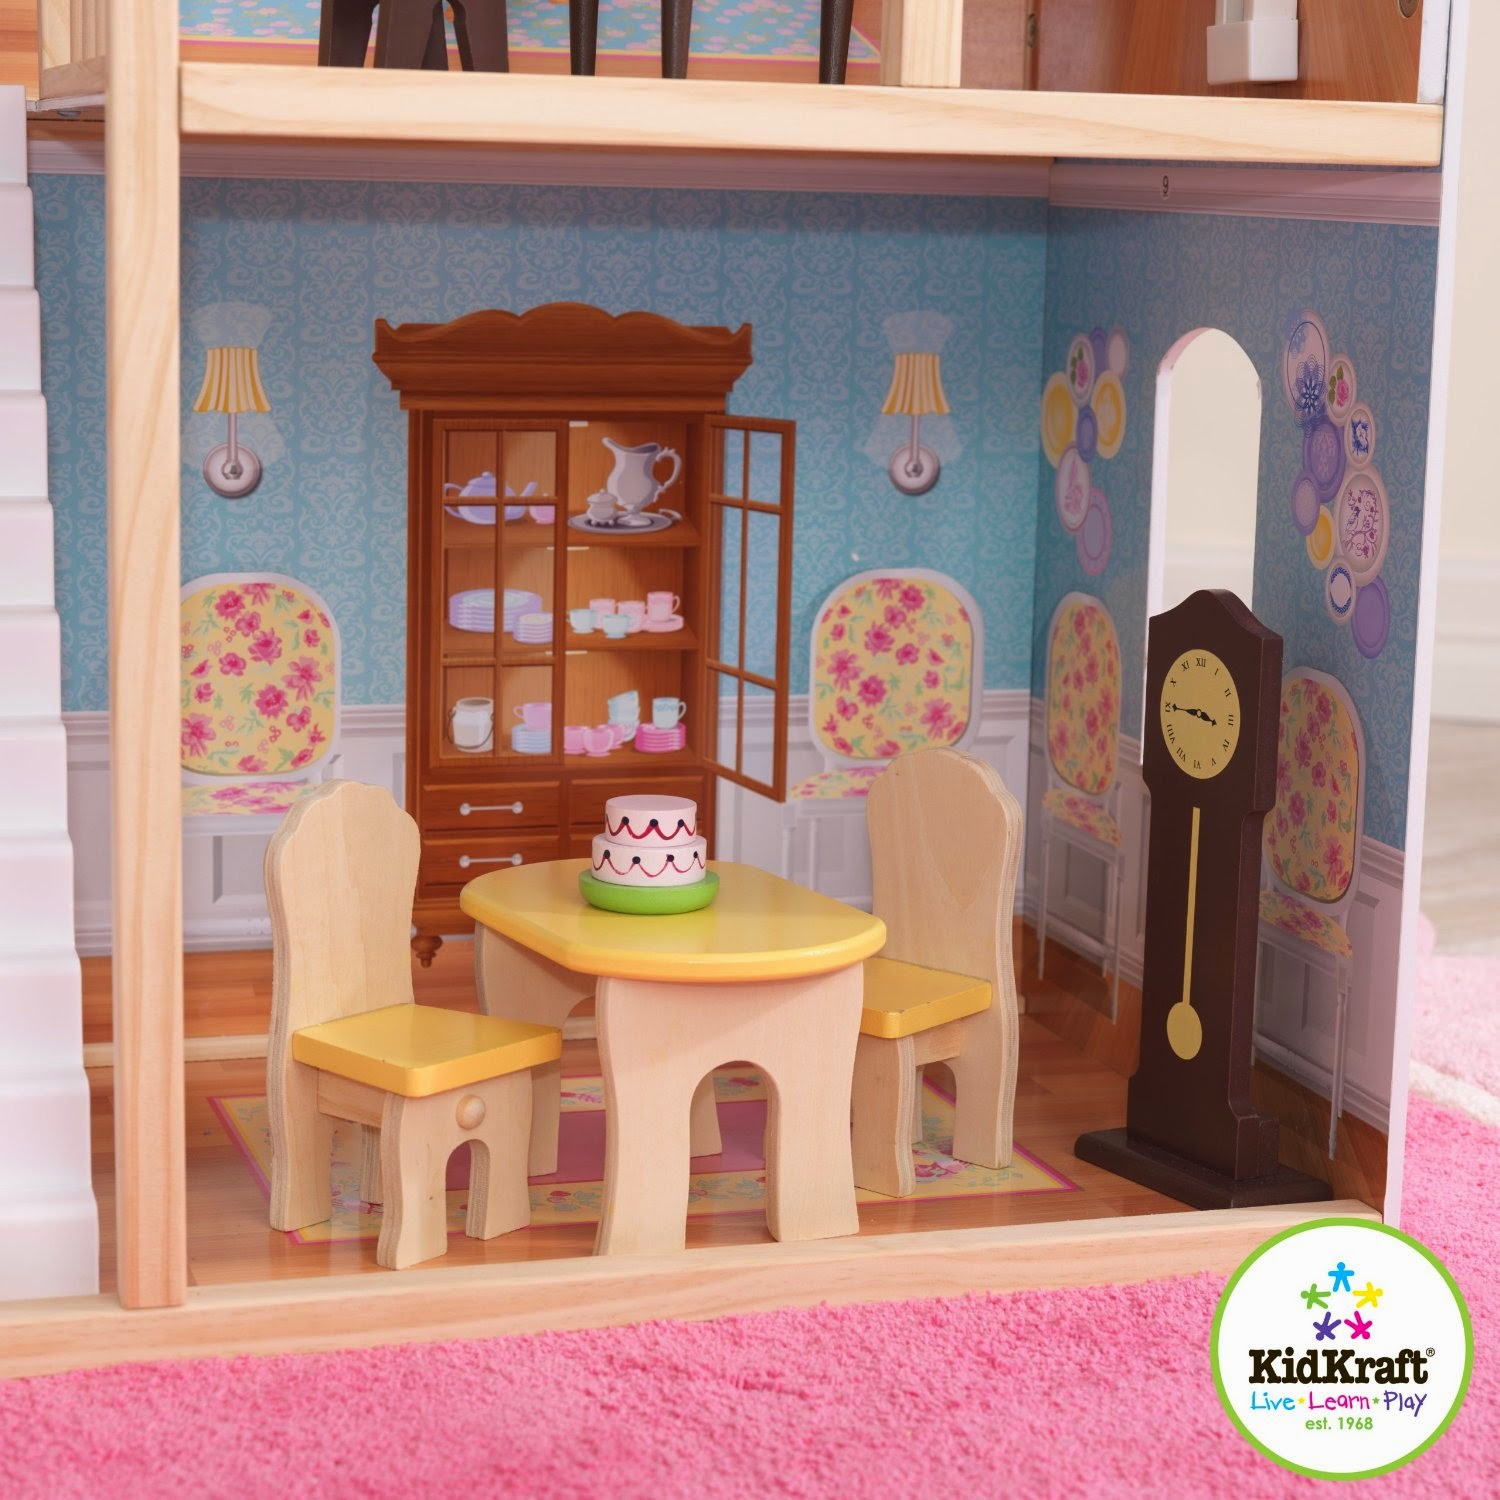 Lovely Kidkraft Majestic Mansion Dollhouse 65252 For Kids Play Room Furniture Ideas: Charming Kidkraft Majestic Mansion Dollhouse 65252 Made Of Wood With Pink Rug For Kids Play Room Decor Ideas